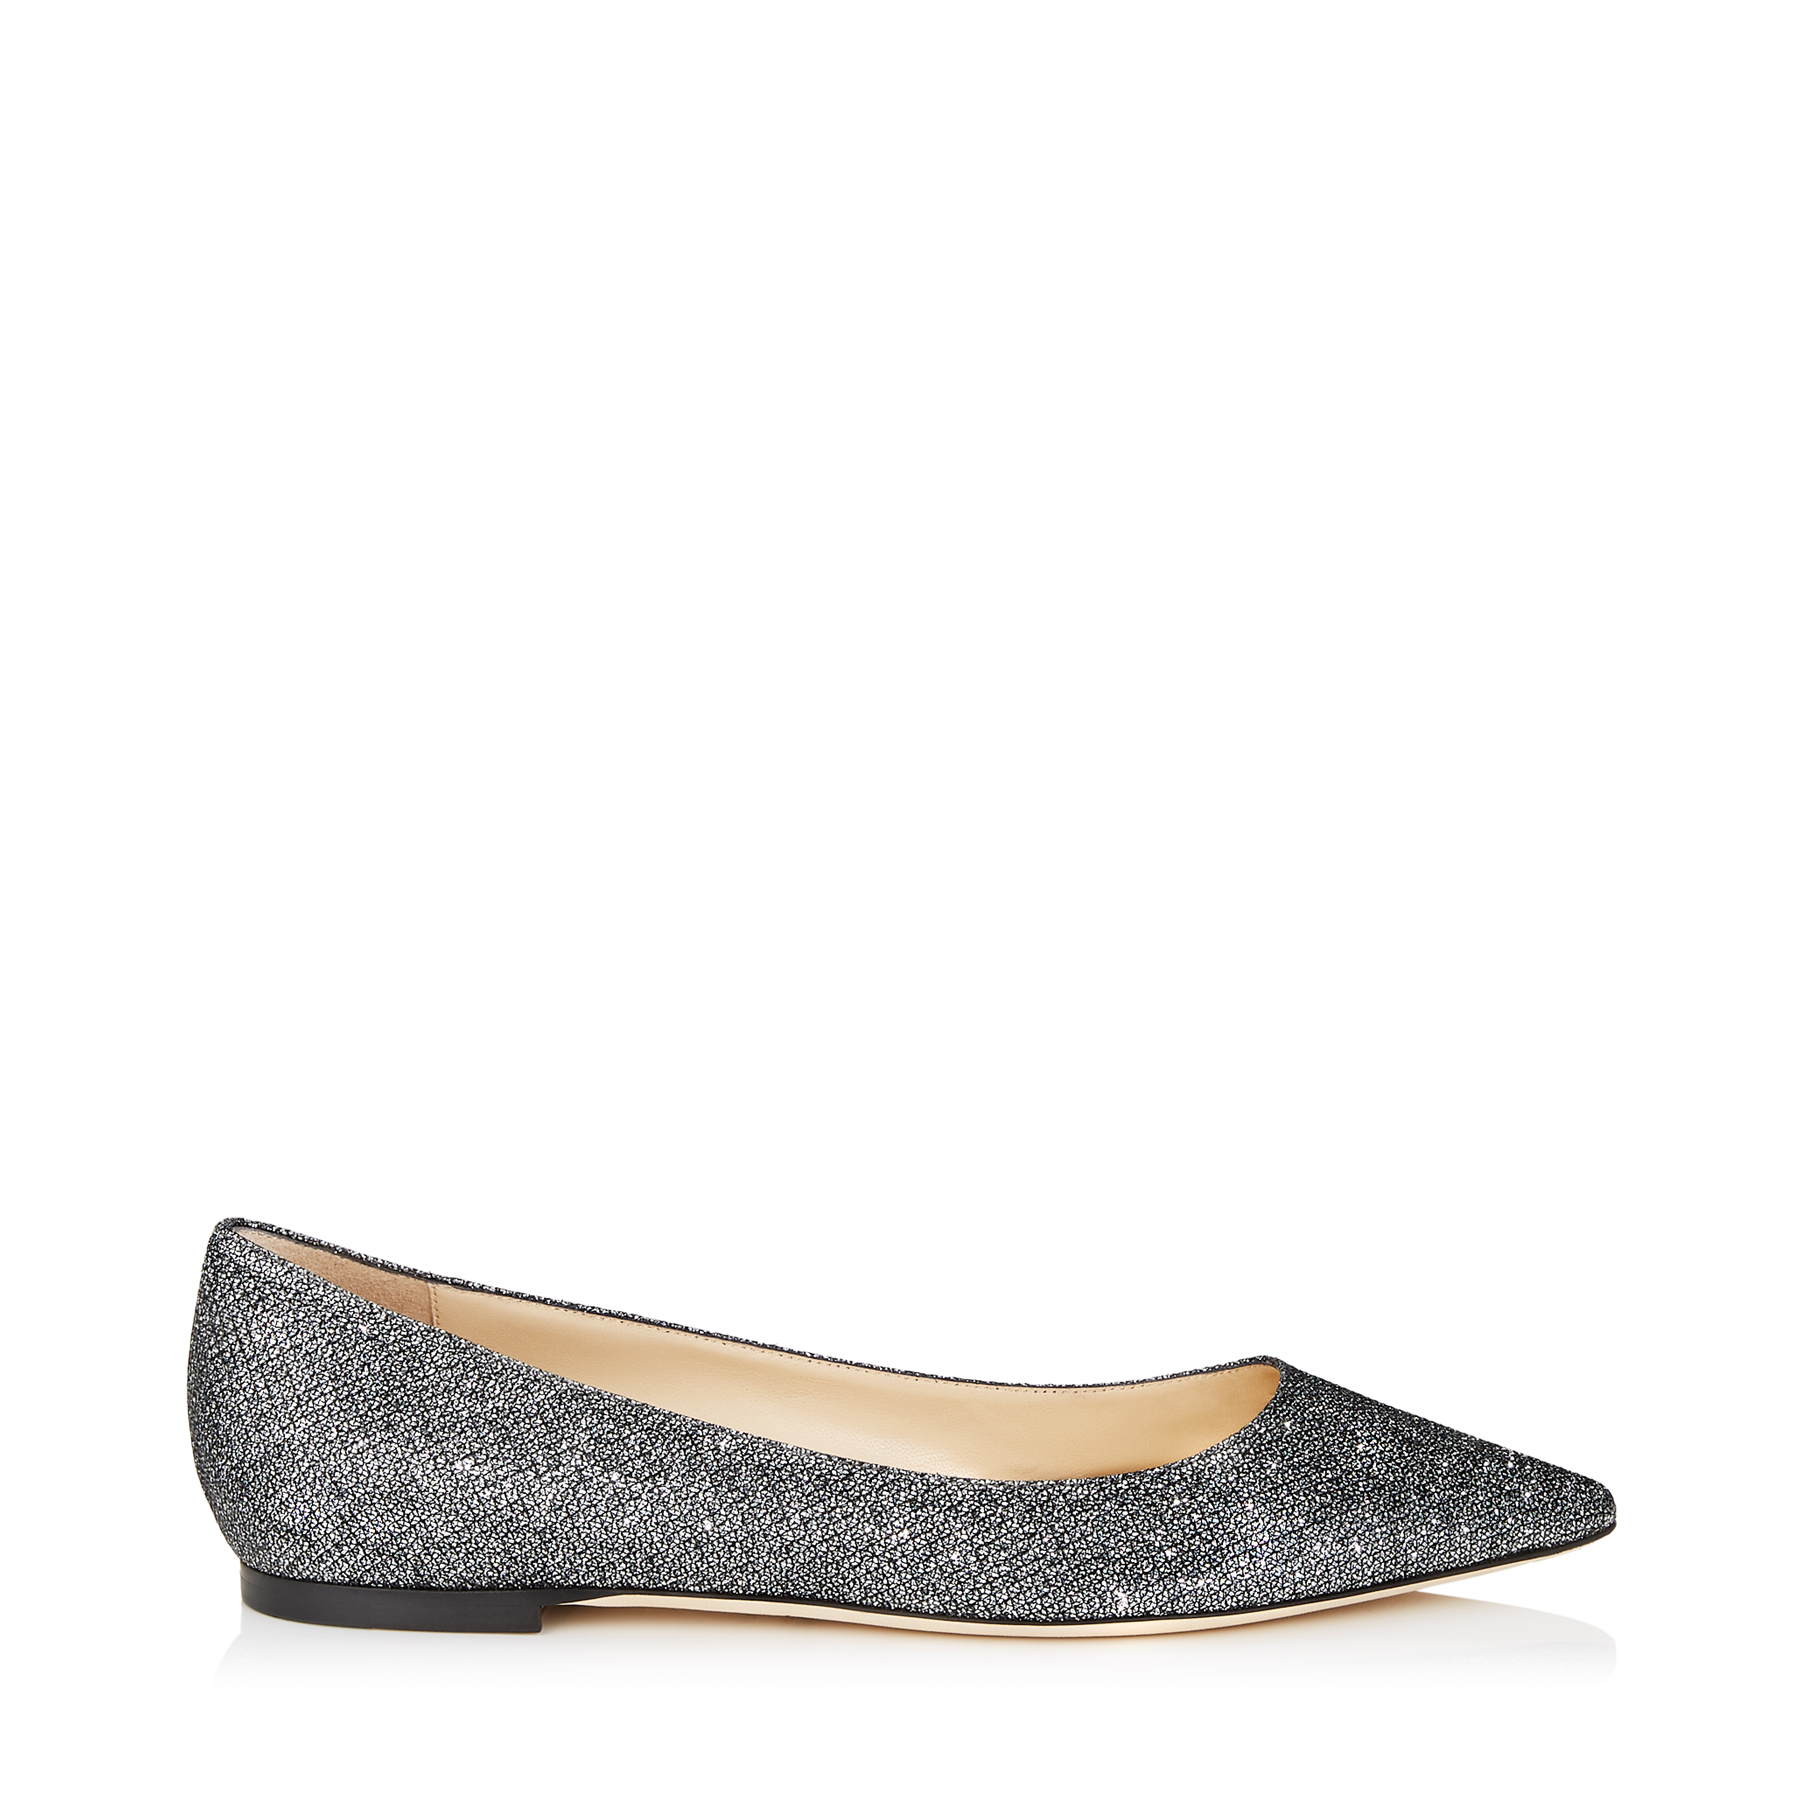 ROMY FLAT Anthracite Lamé Glitter Fabric Pointy Toe Flats